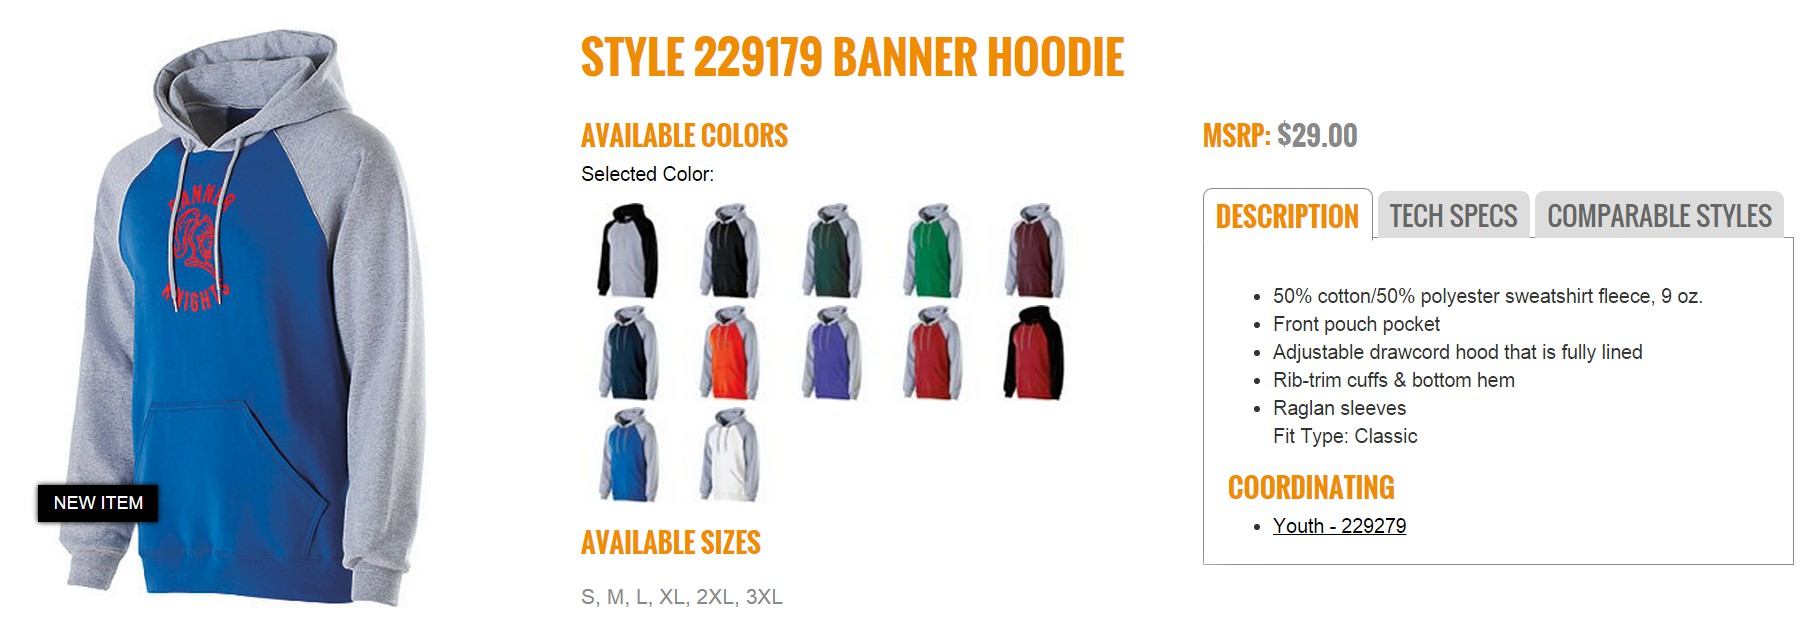 Group Fundraising Store Apparel Fundraising Holloway Banner Hoodie 229179